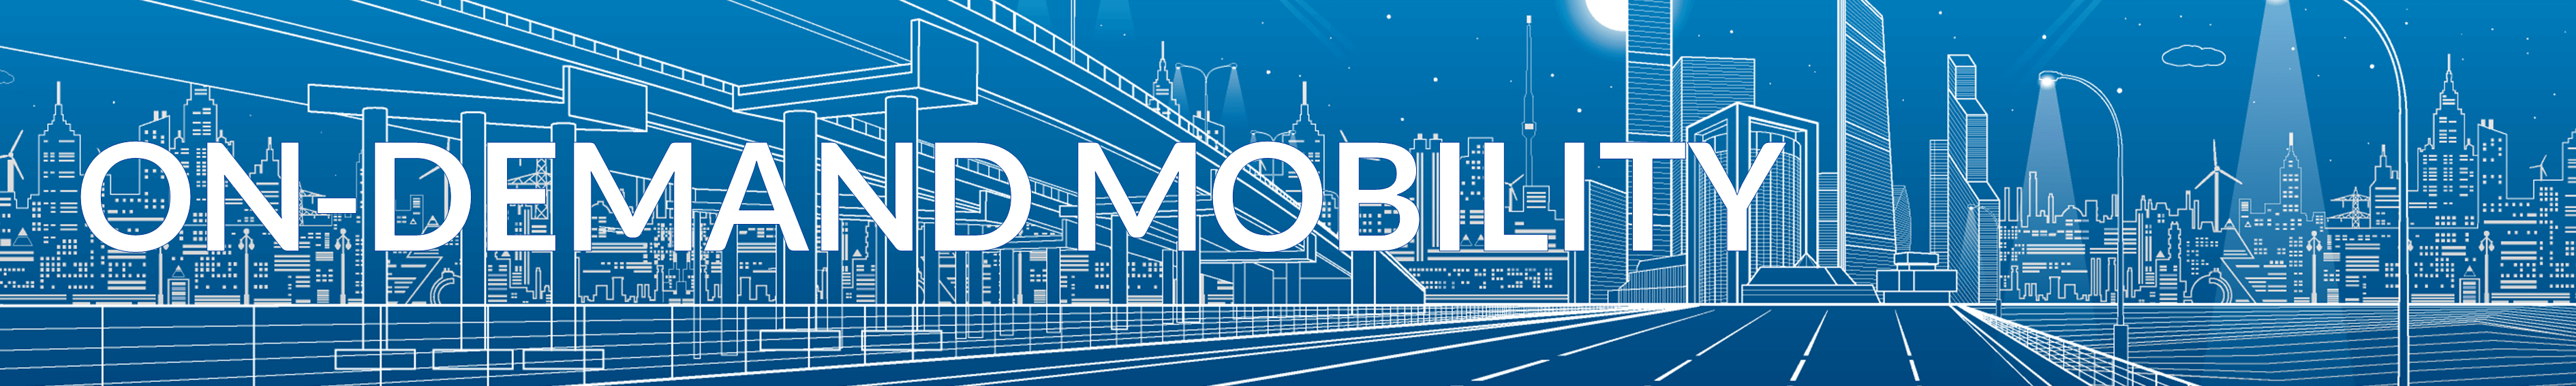 on demand mobility, uber, lyft, ride hailing, ride-hailing, Automotive trends, Auto industry trends, Automotive market research, Automotive market analysis, auto industry news